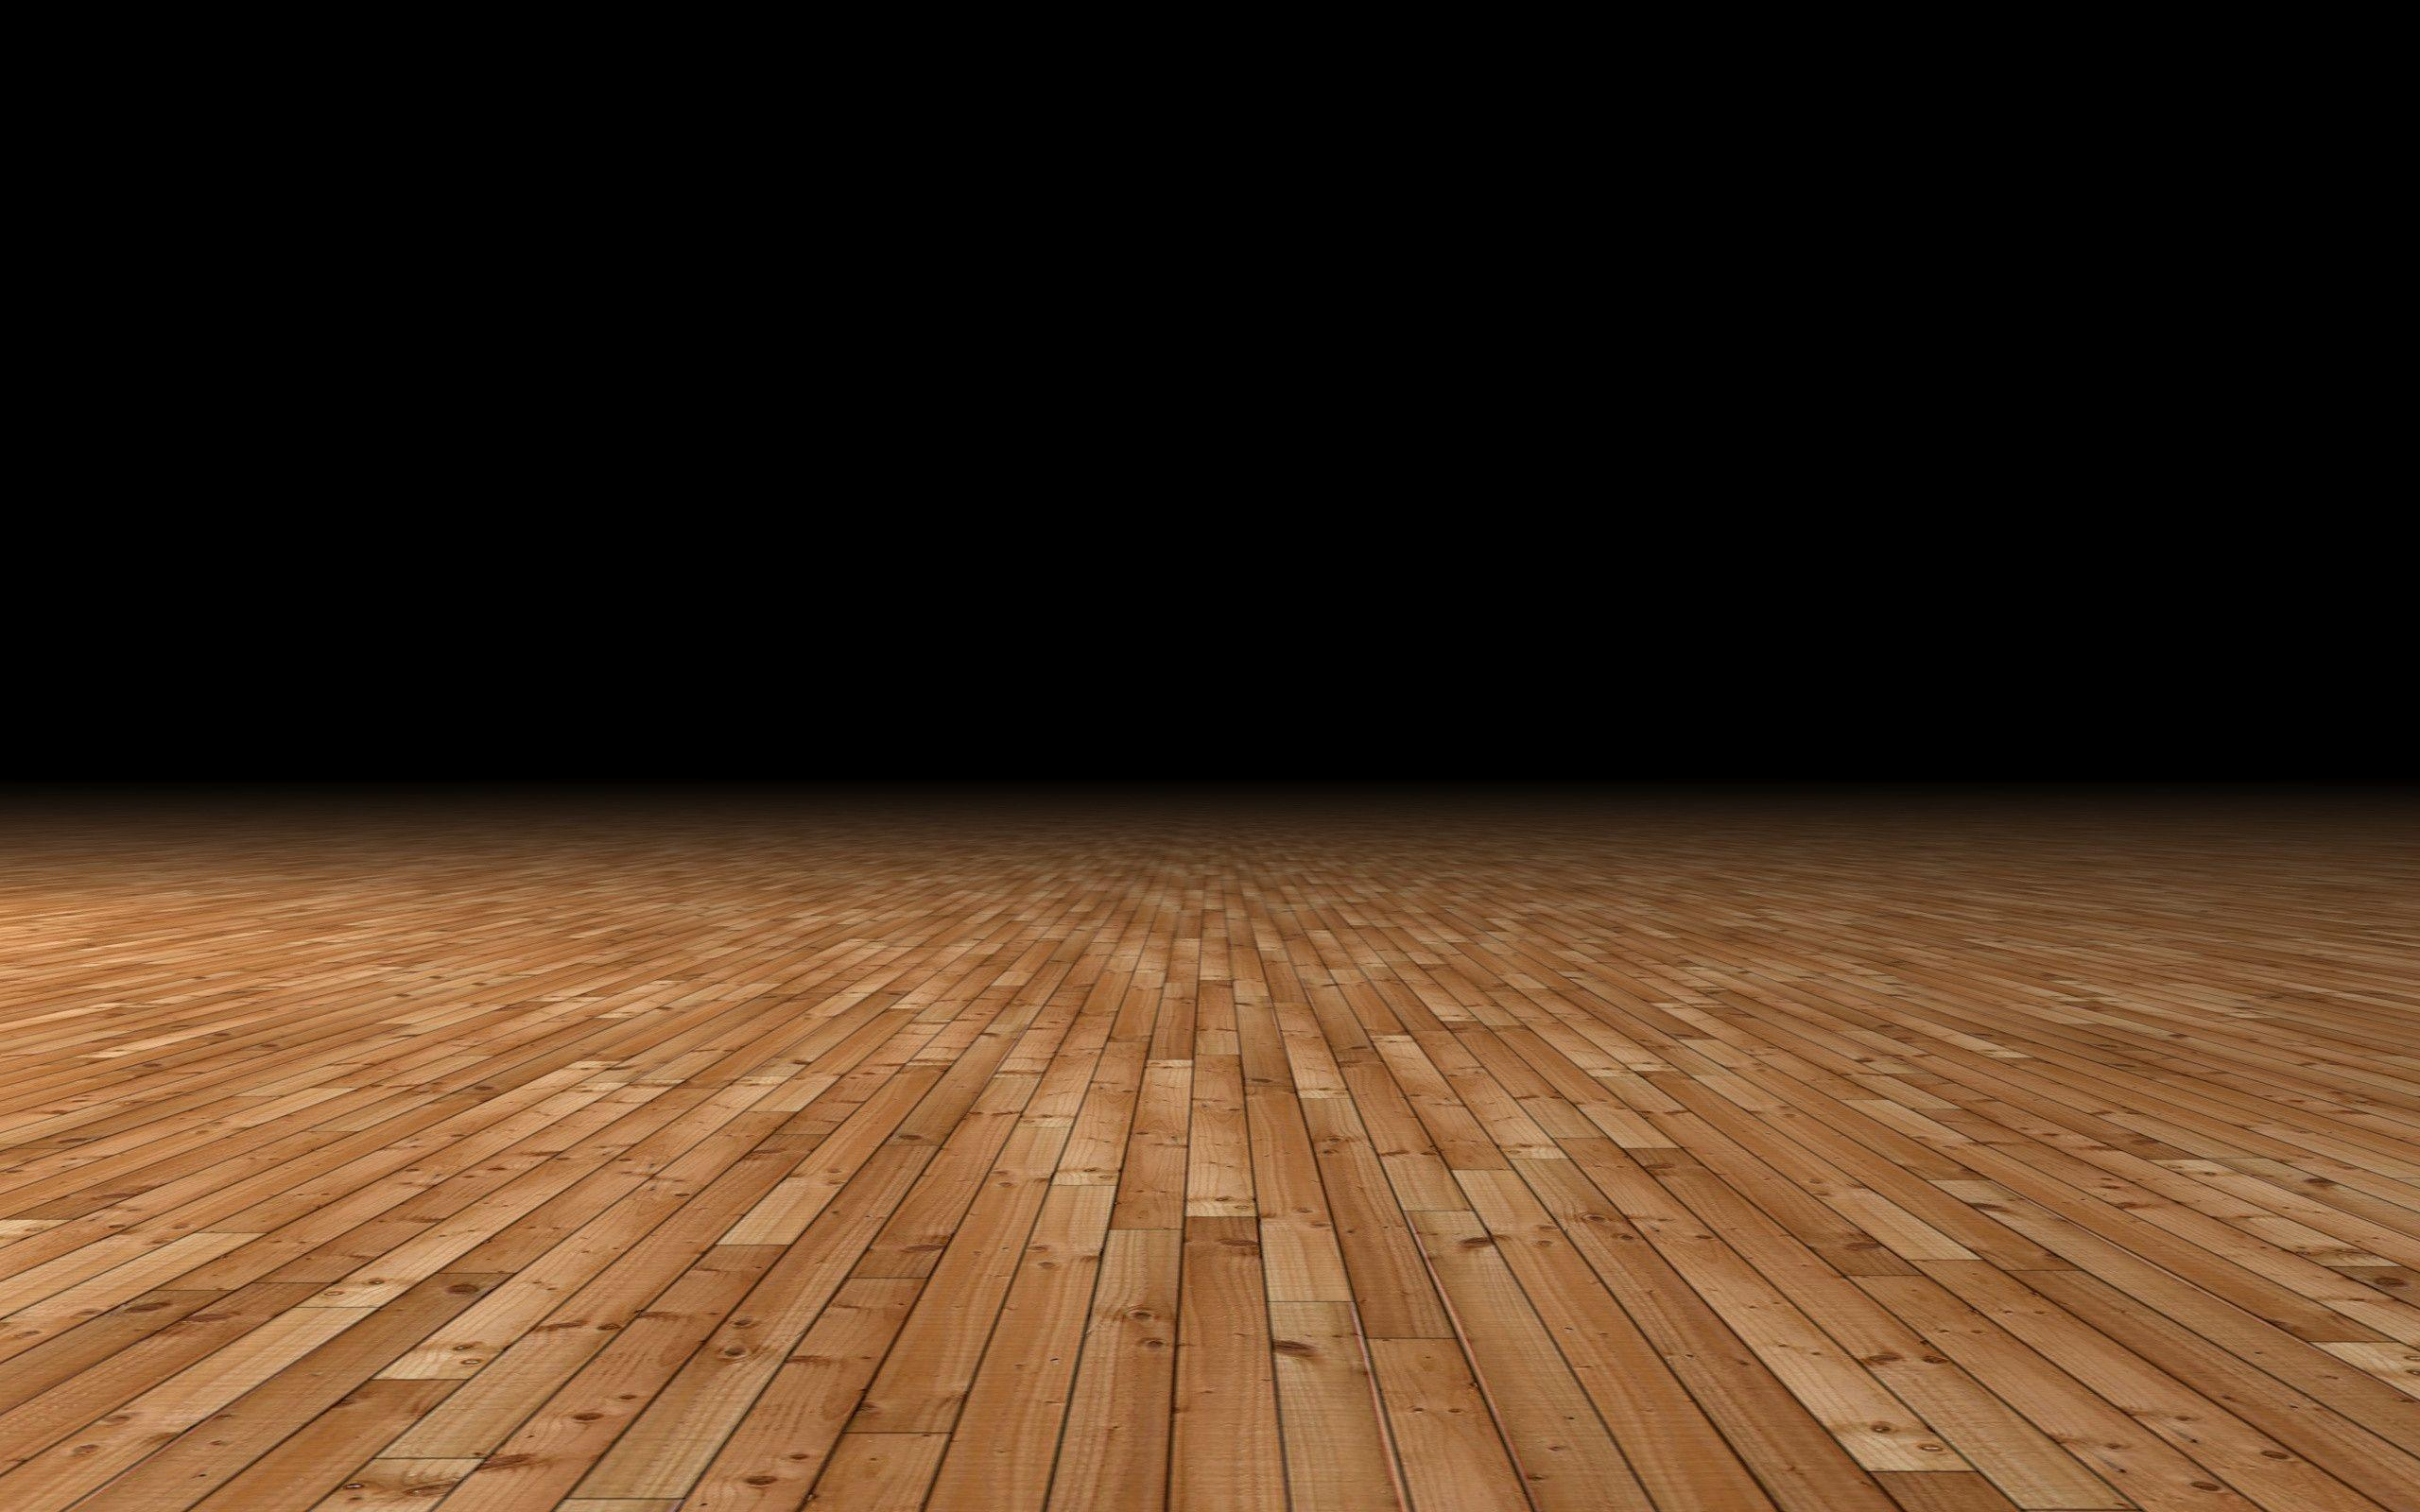 3d wallpaper wood floor - photo #35